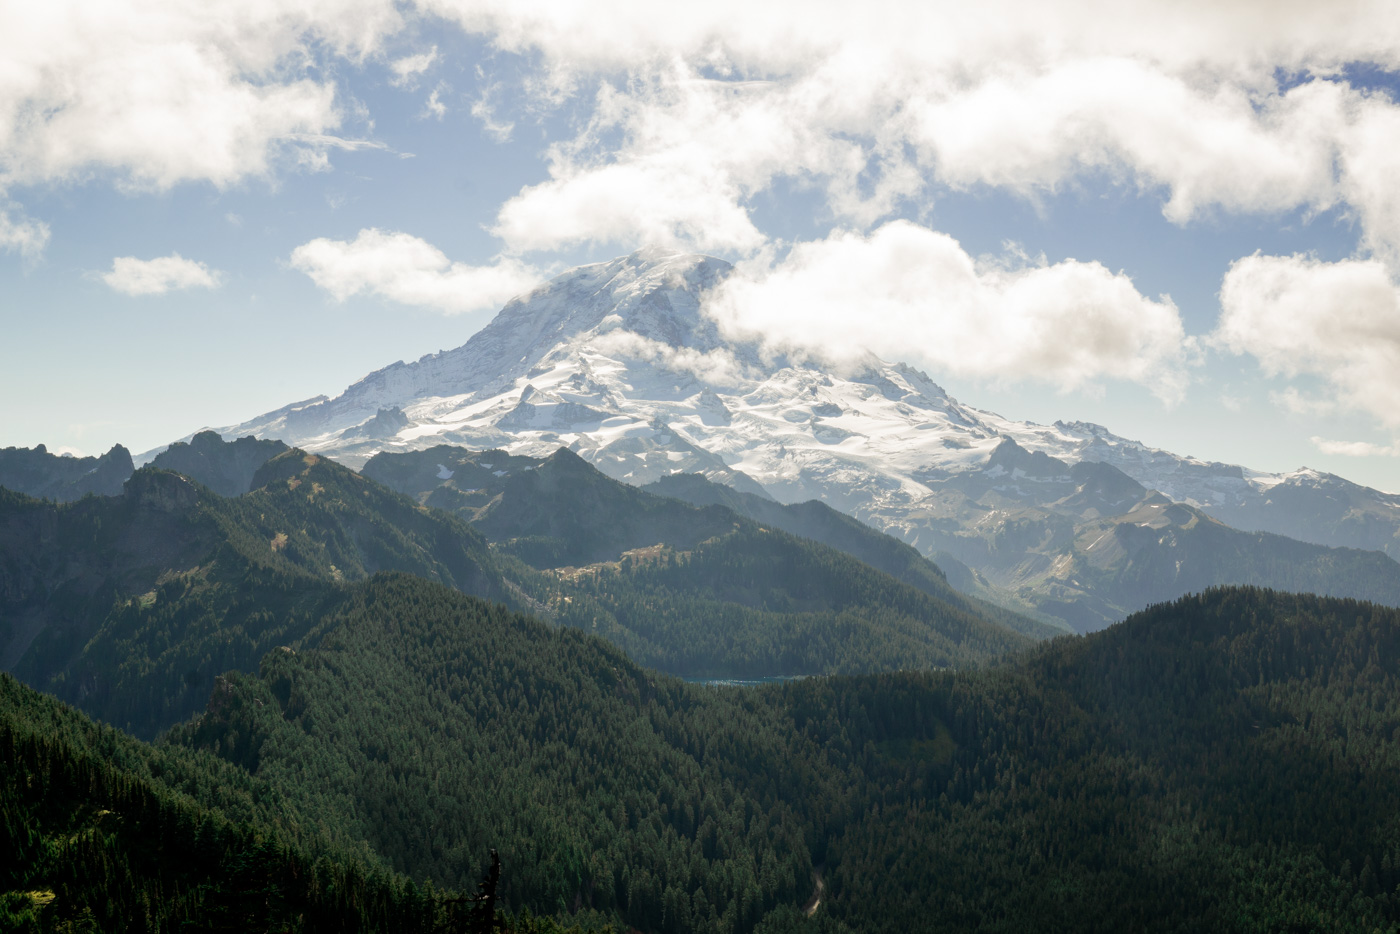 View from the lookout point at the top of Mount Rainier after completing a hike up the mountain